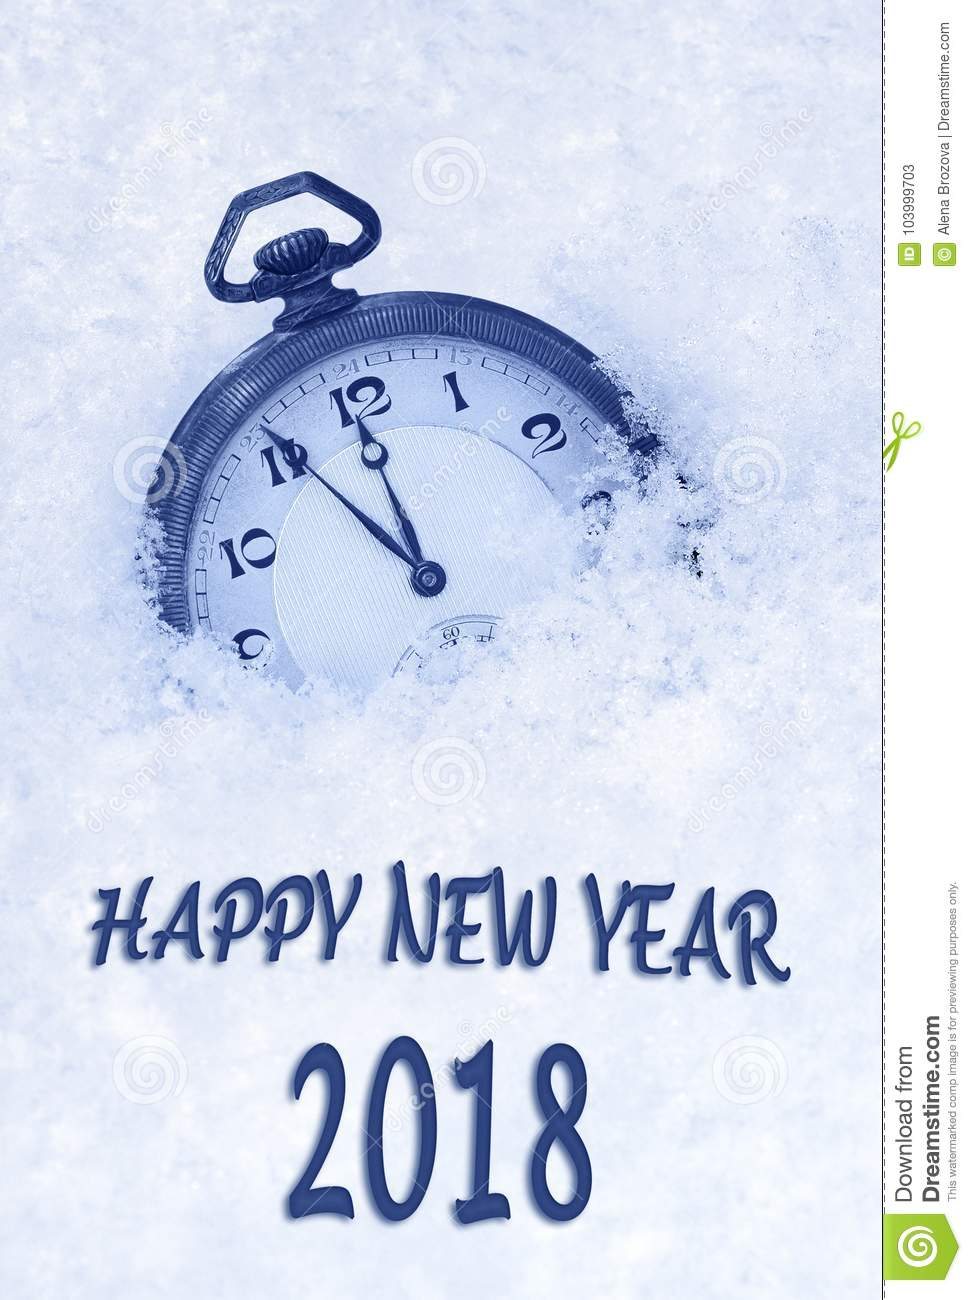 2018 New Year Greeting Card In English Language Pocket Watch In